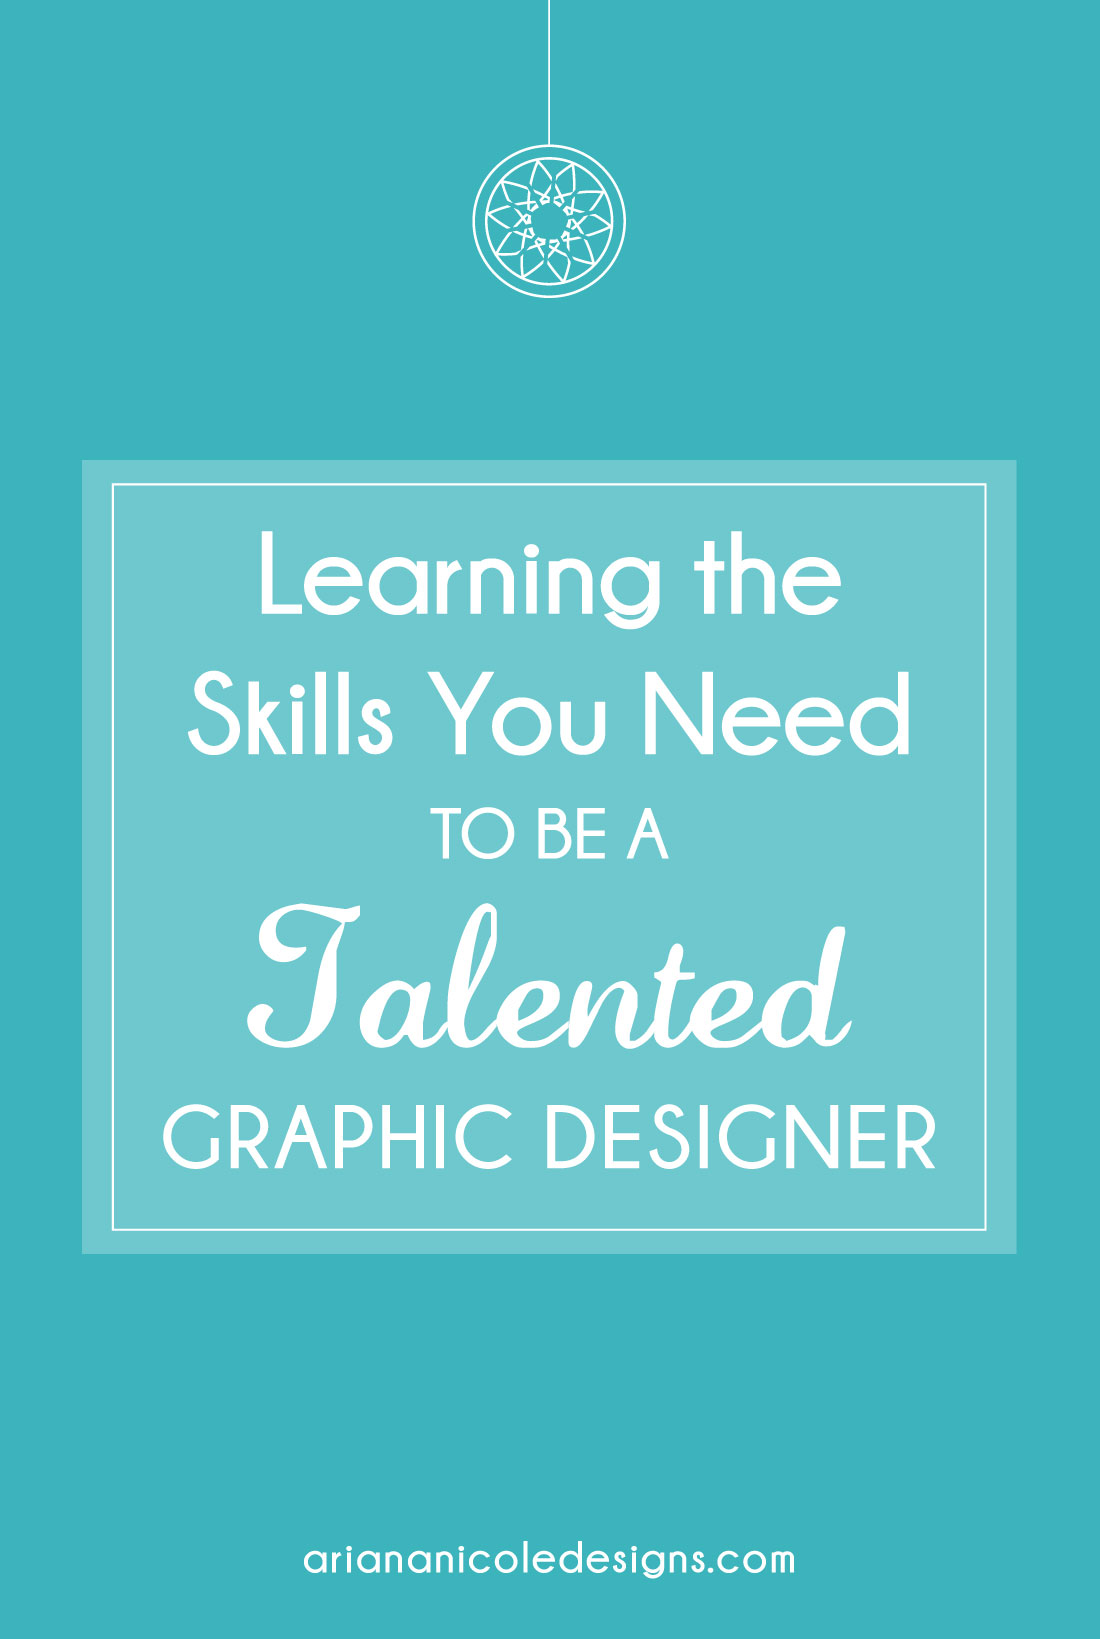 Learning_the_Skills_You_Need_to_be_a_Talented_Graphic_Designer-1100